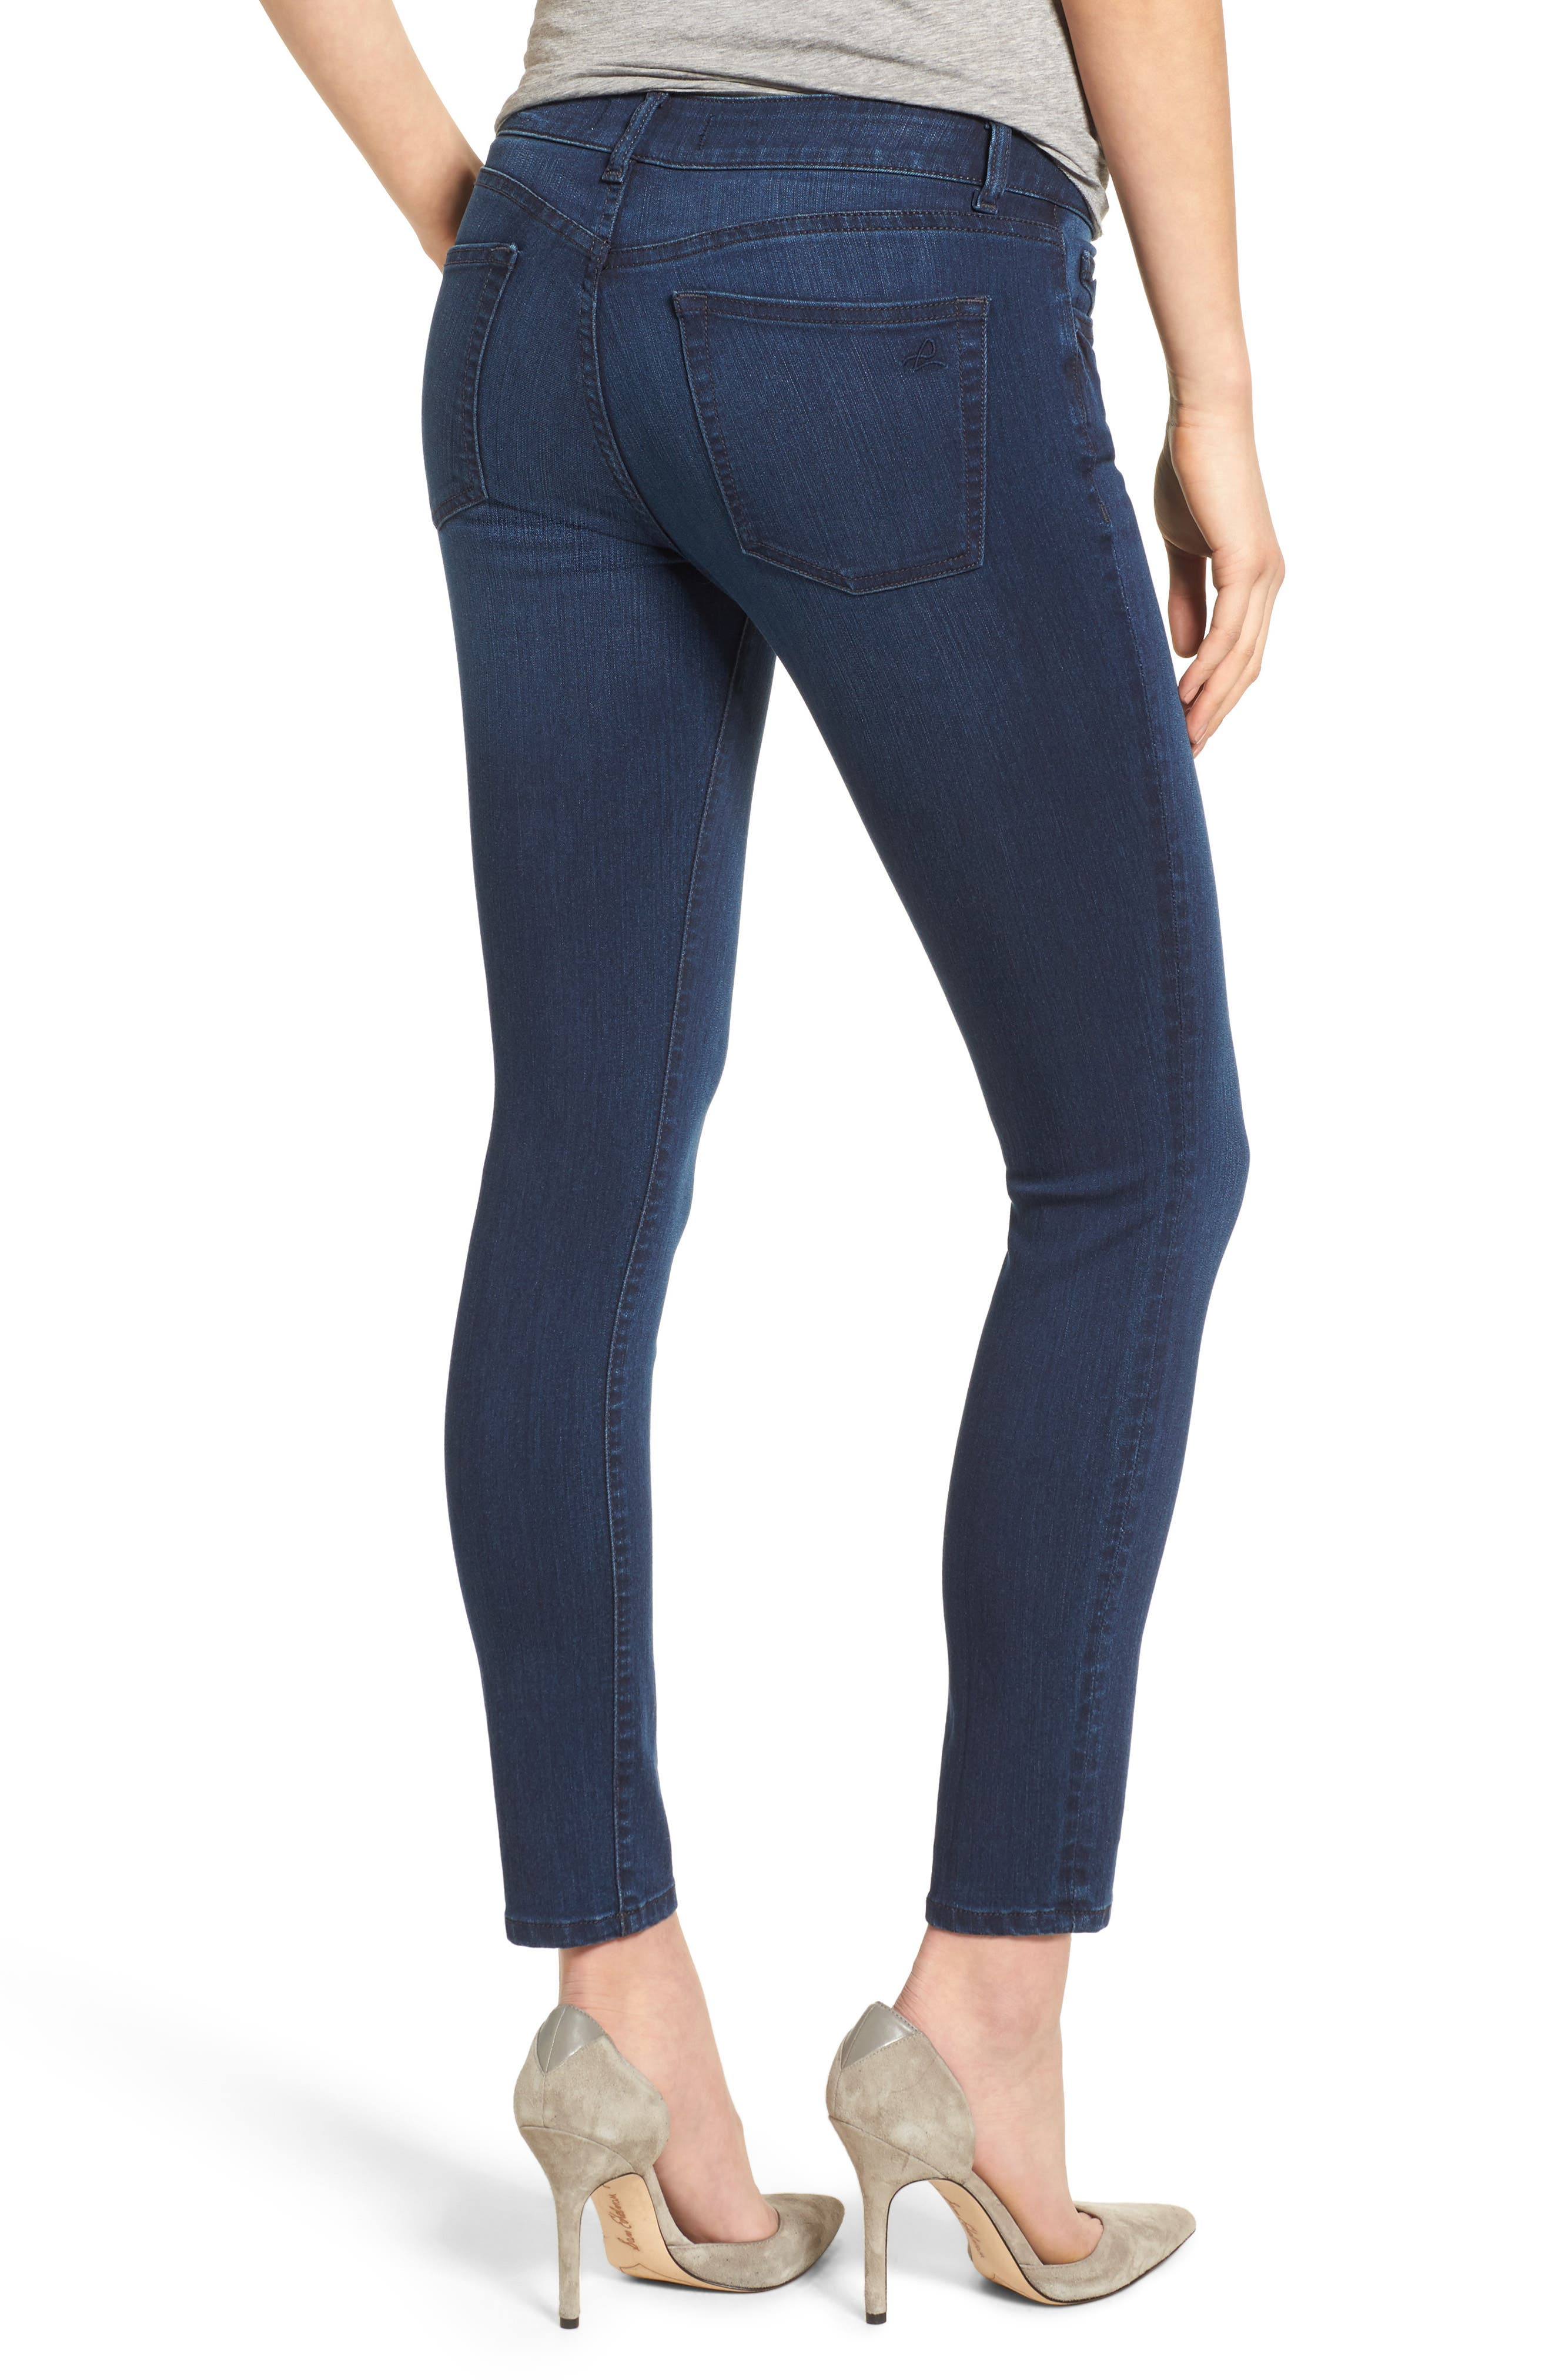 Margaux Instasculpt Ankle Skinny Jeans,                             Alternate thumbnail 2, color,                             405